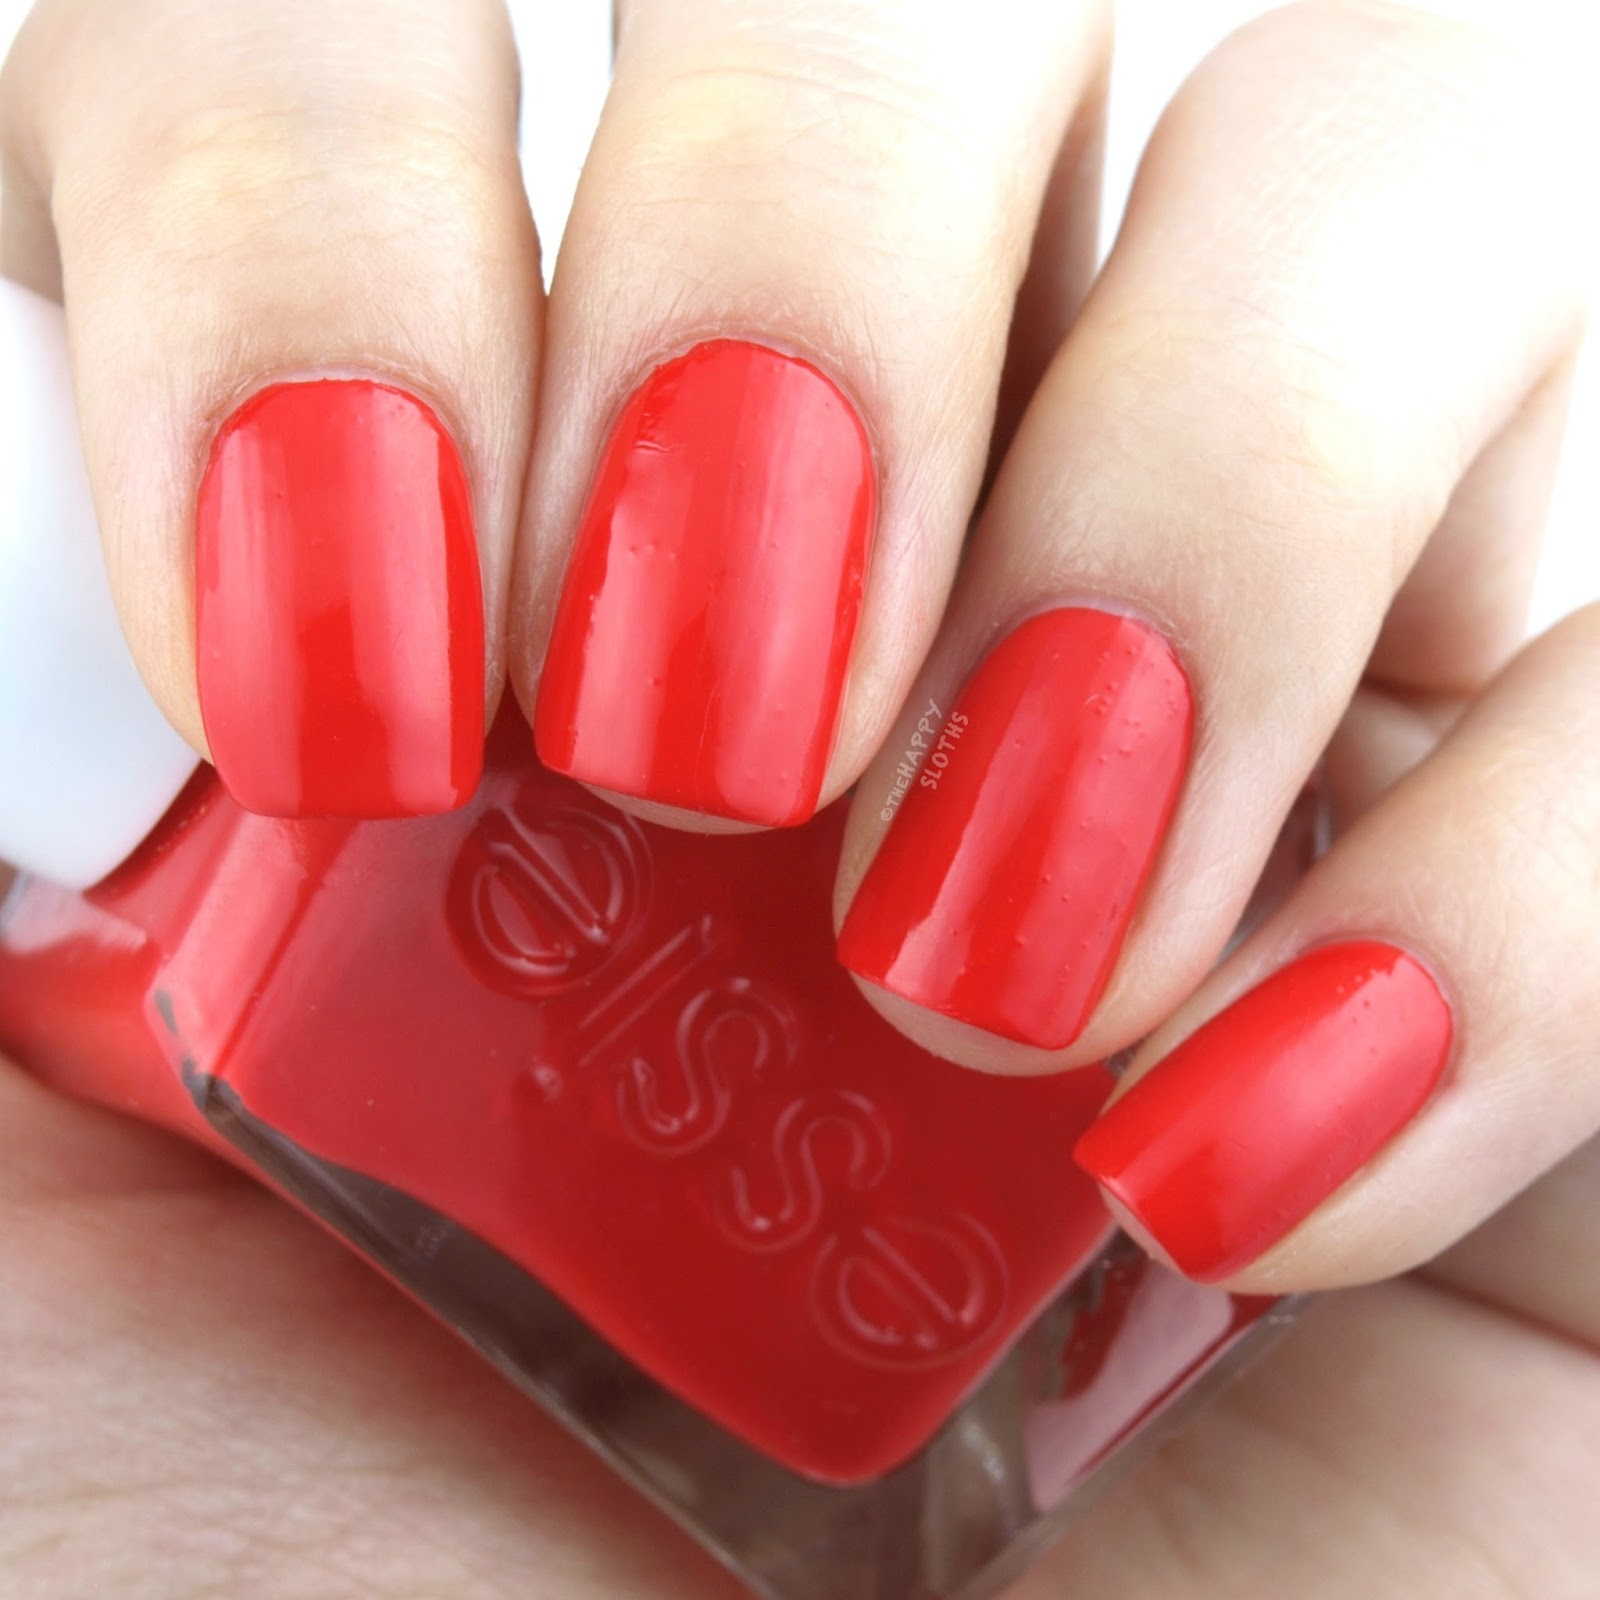 Essie Gel Couture 260 Flashed: Swatches and Review